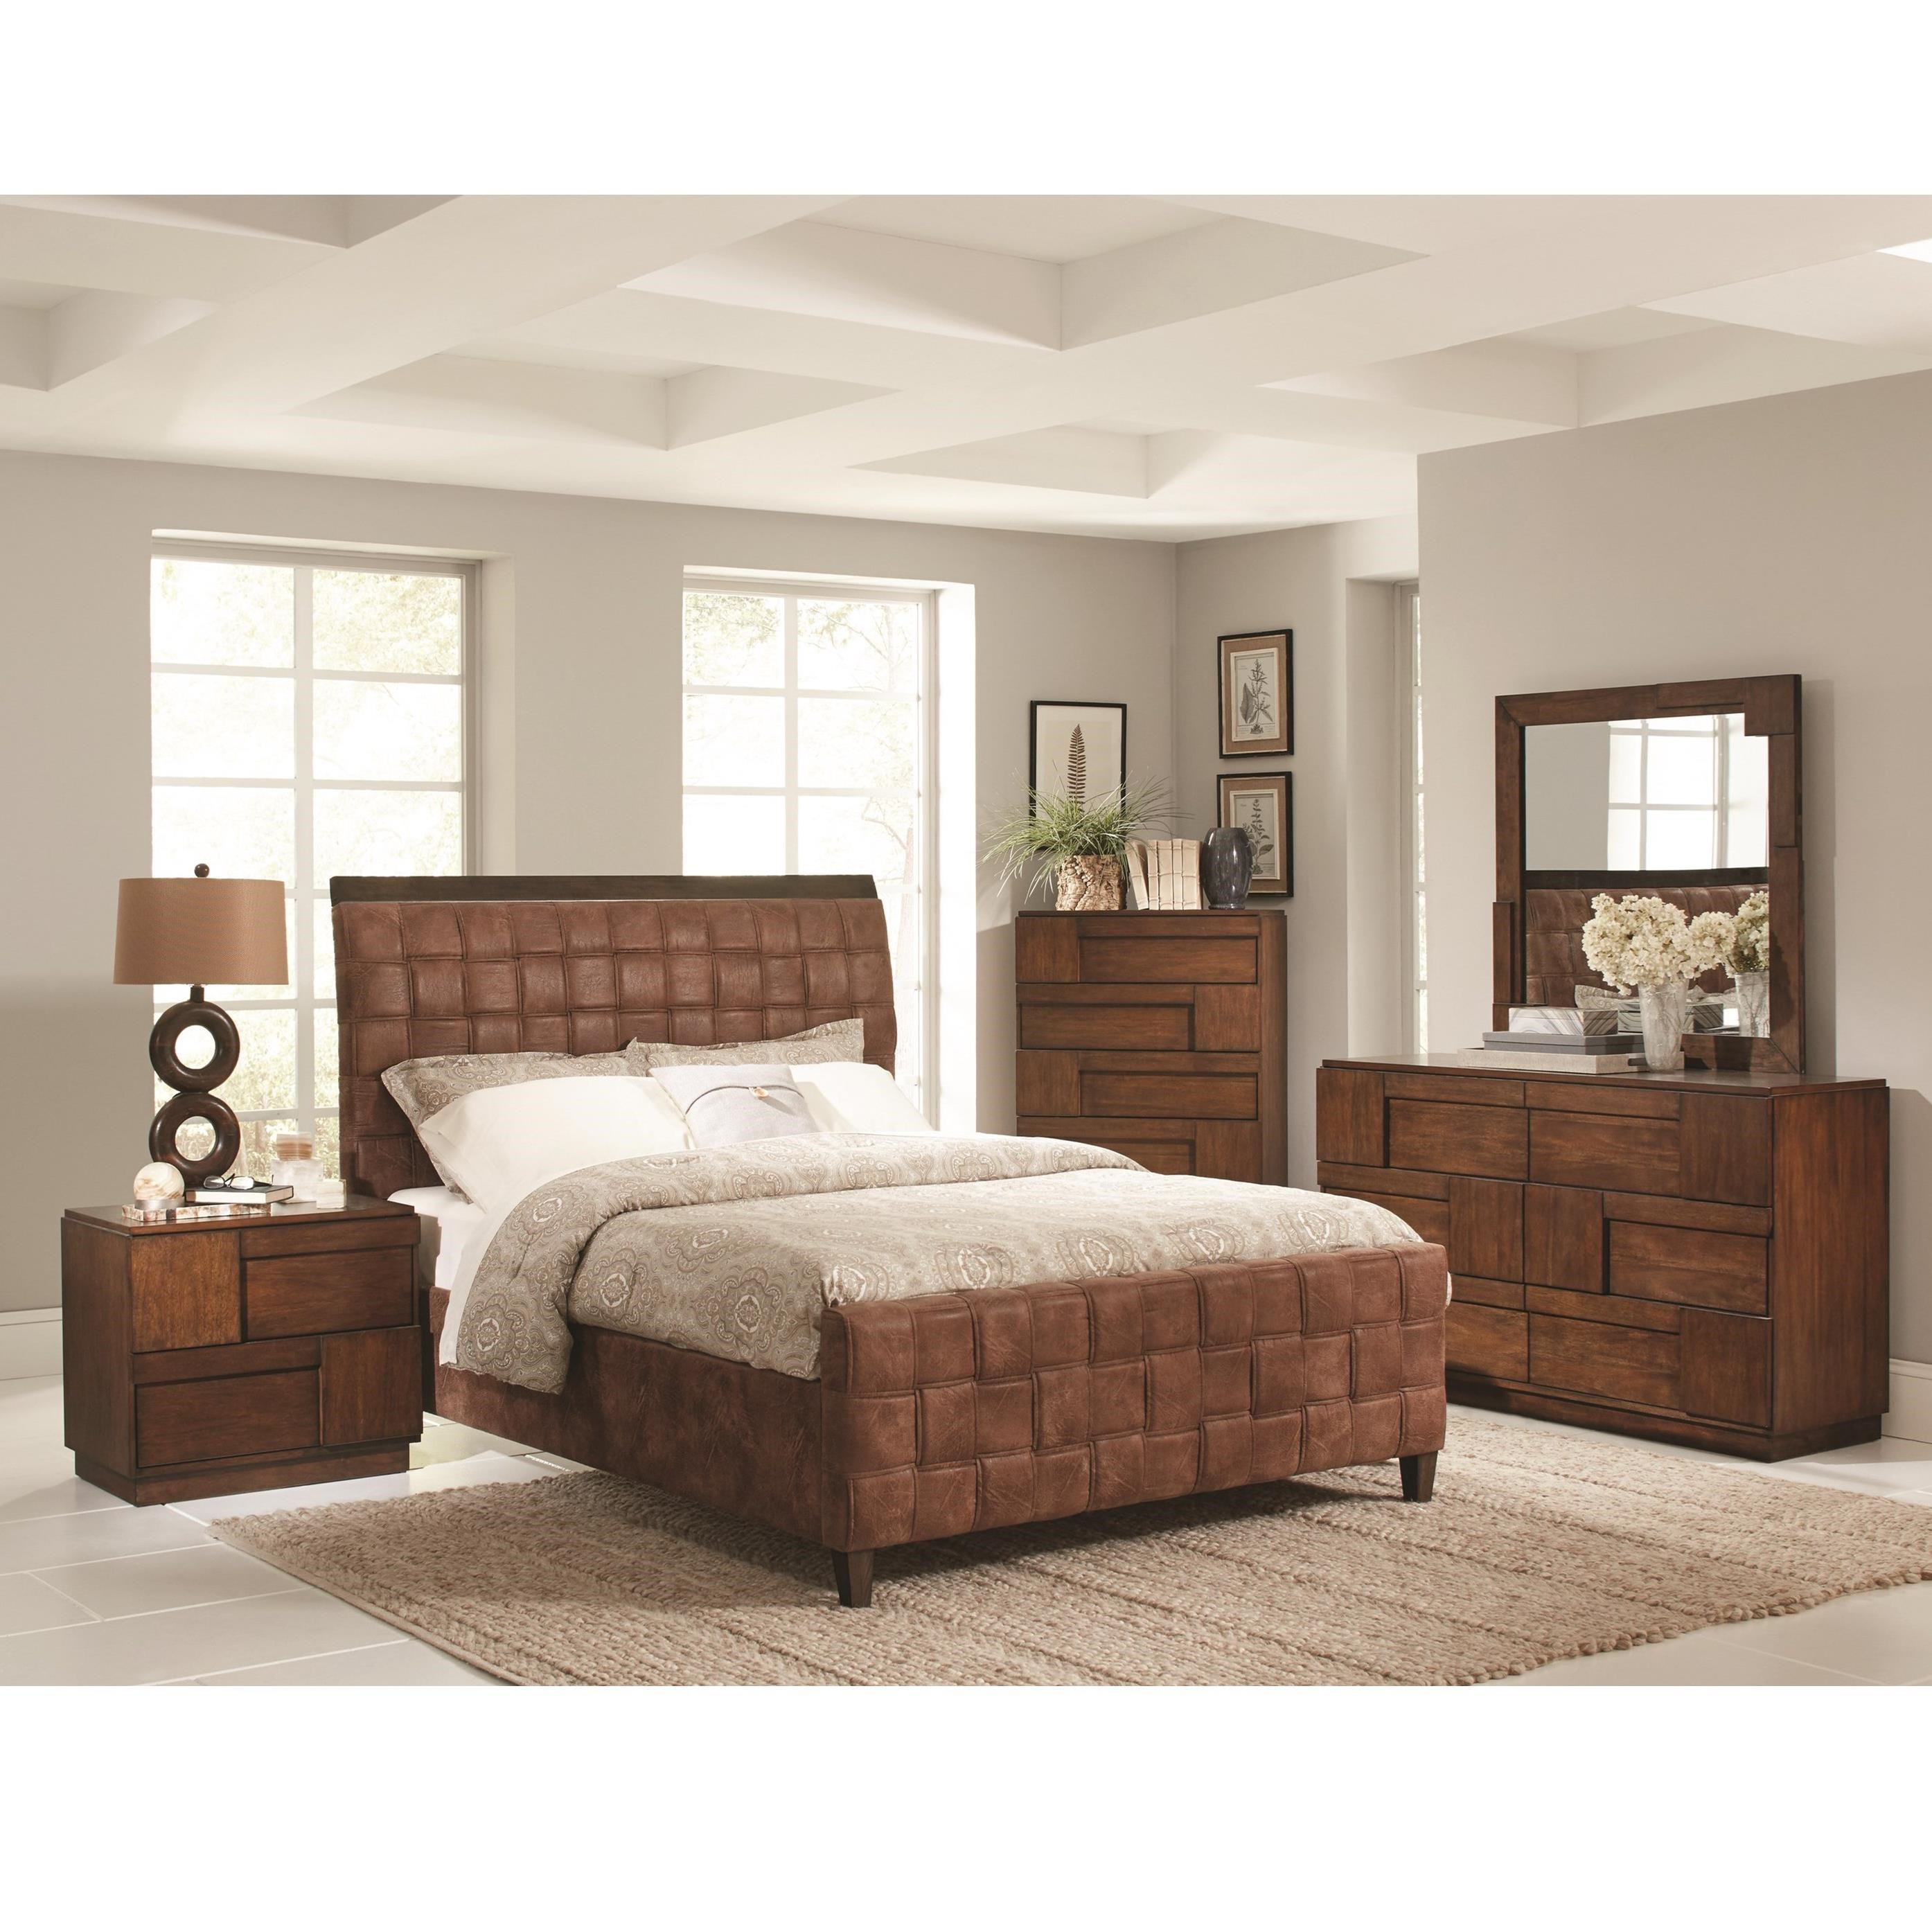 Ordinaire Coaster GallagherKing Bedroom Group